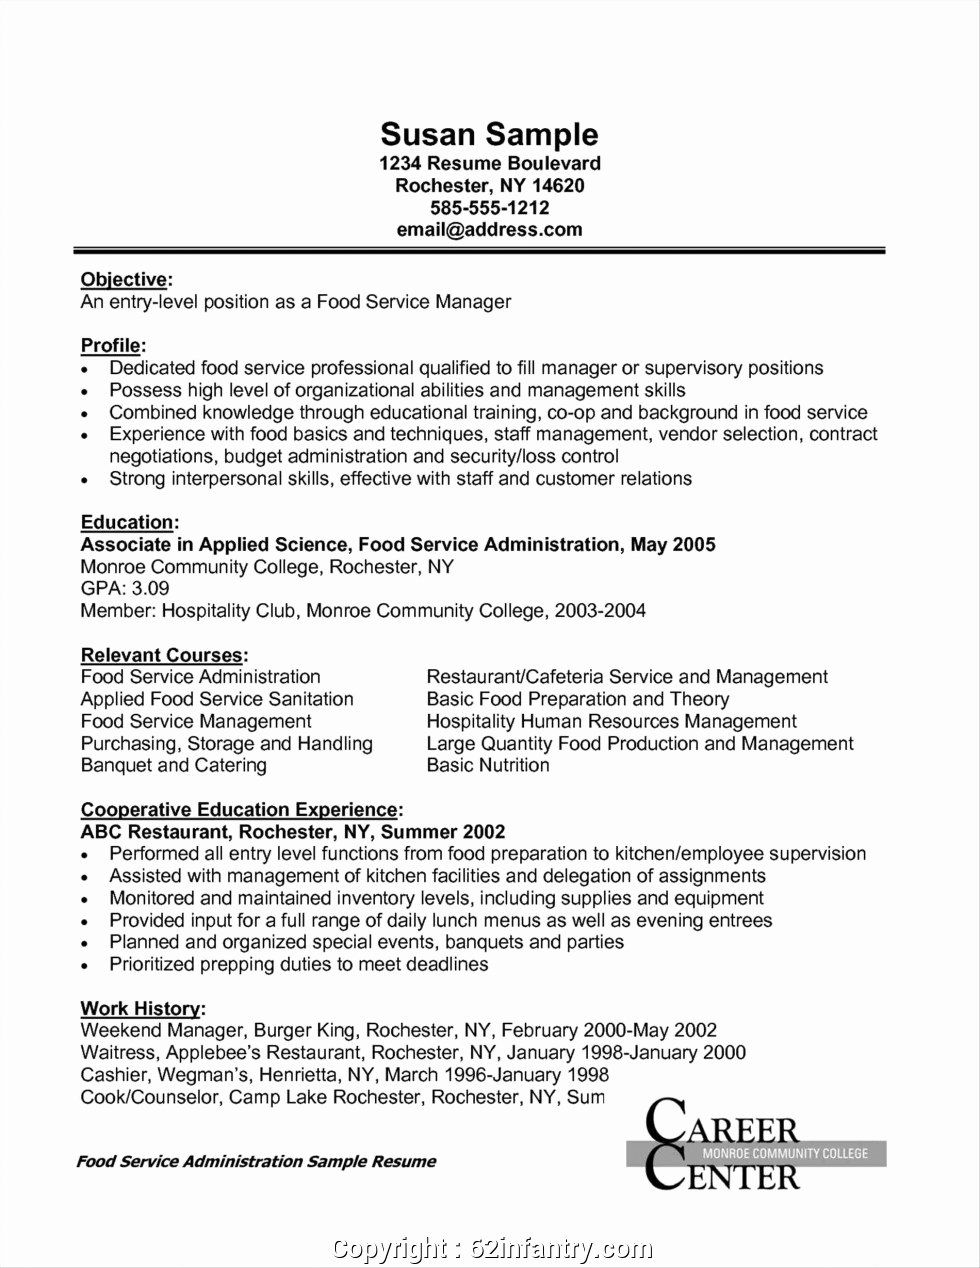 20 Fast Food Cashier Job Description Resume In 2020 Resume